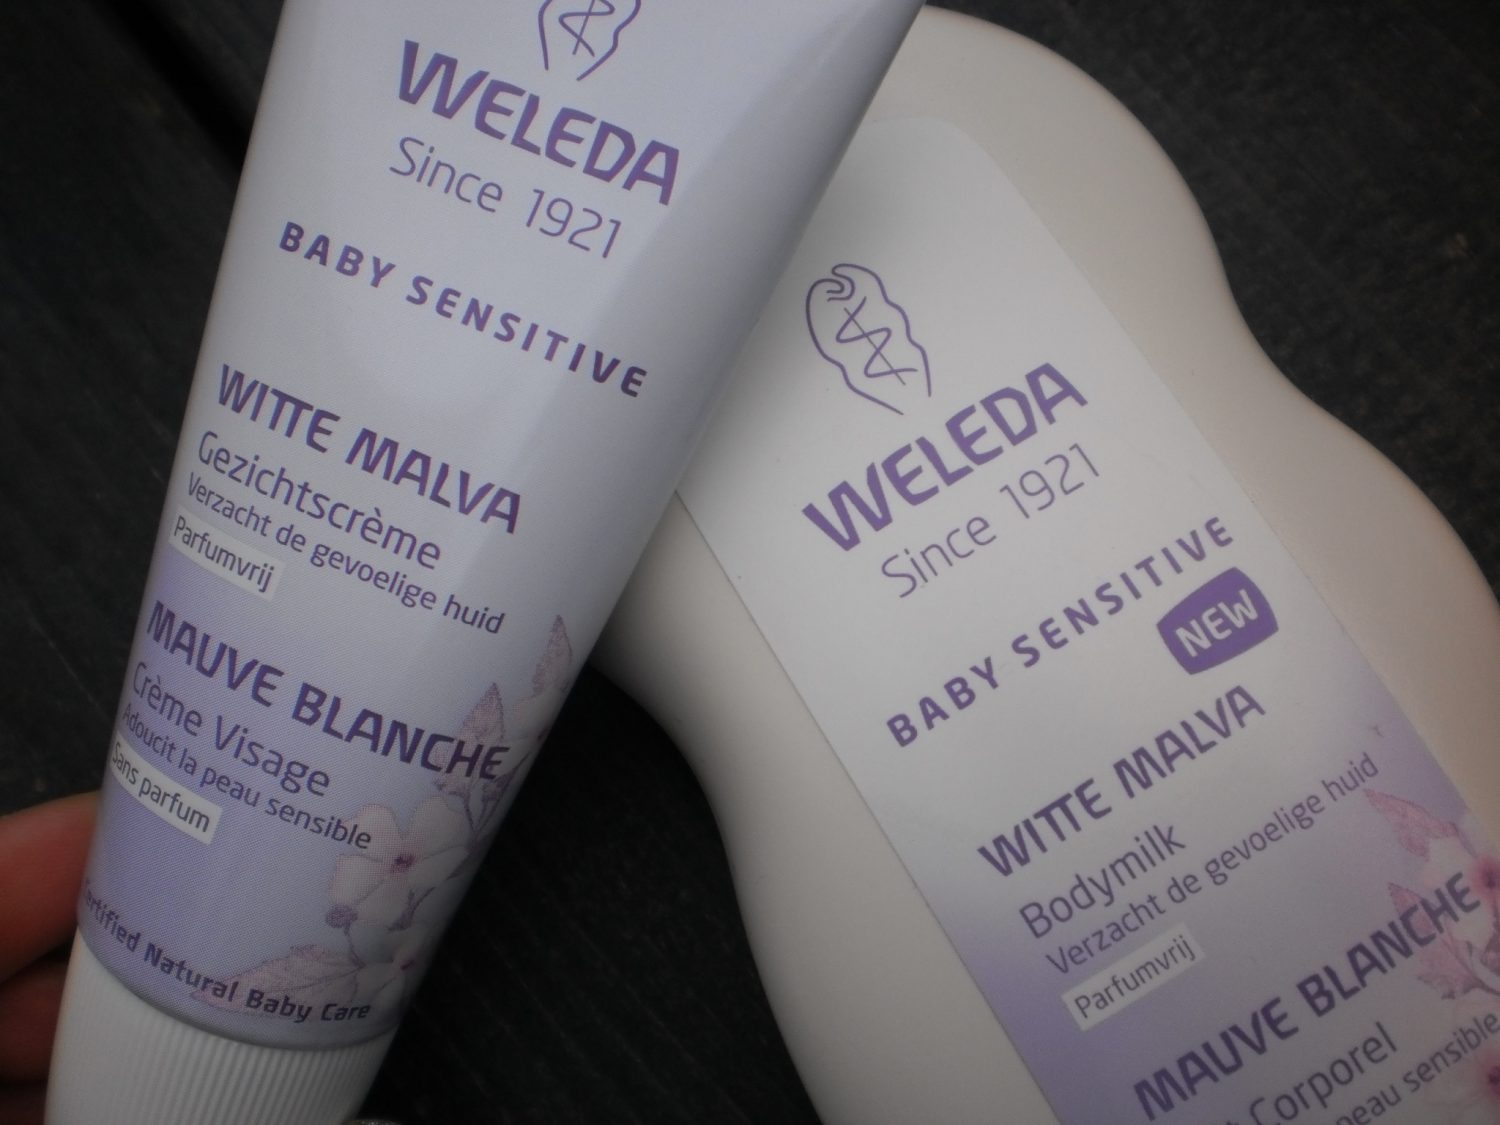 Weleda Baby Sensitive Witte Malva